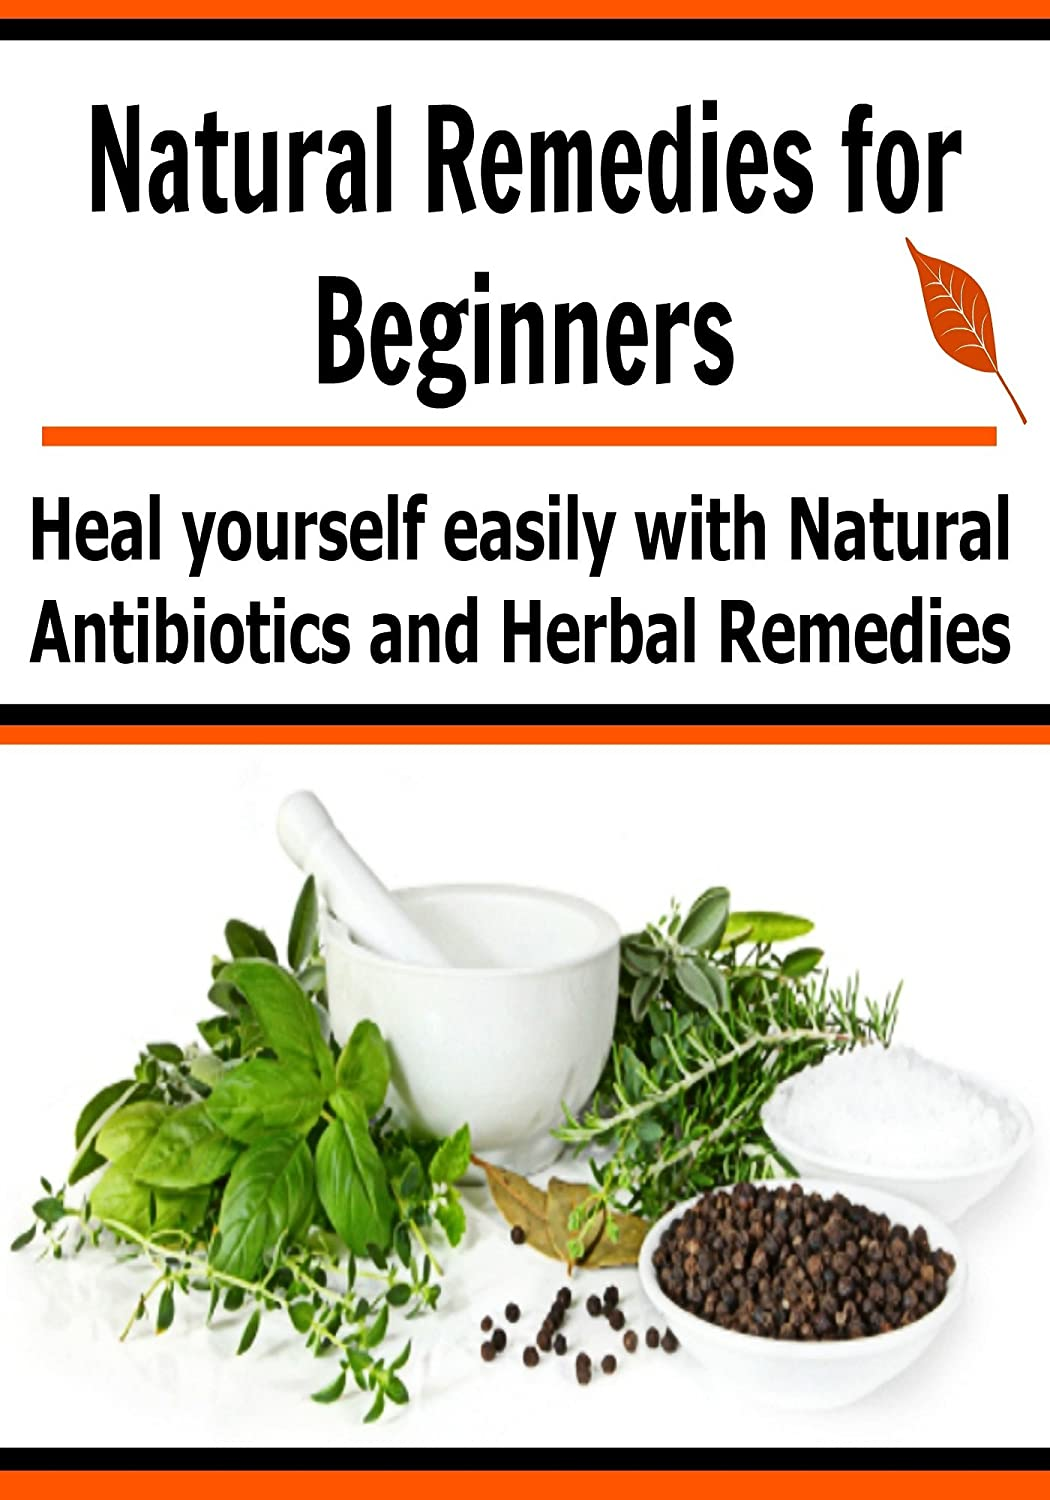 http://www.amazon.com/Natural-Remedies-Beginners-Yourself-Antibiotics-ebook/dp/B00P6OA1LI/ref=as_sl_pc_ss_til?tag=lettfromahome-20&linkCode=w01&linkId=PCVFR43662SWZ3HL&creativeASIN=B00P6OA1LI